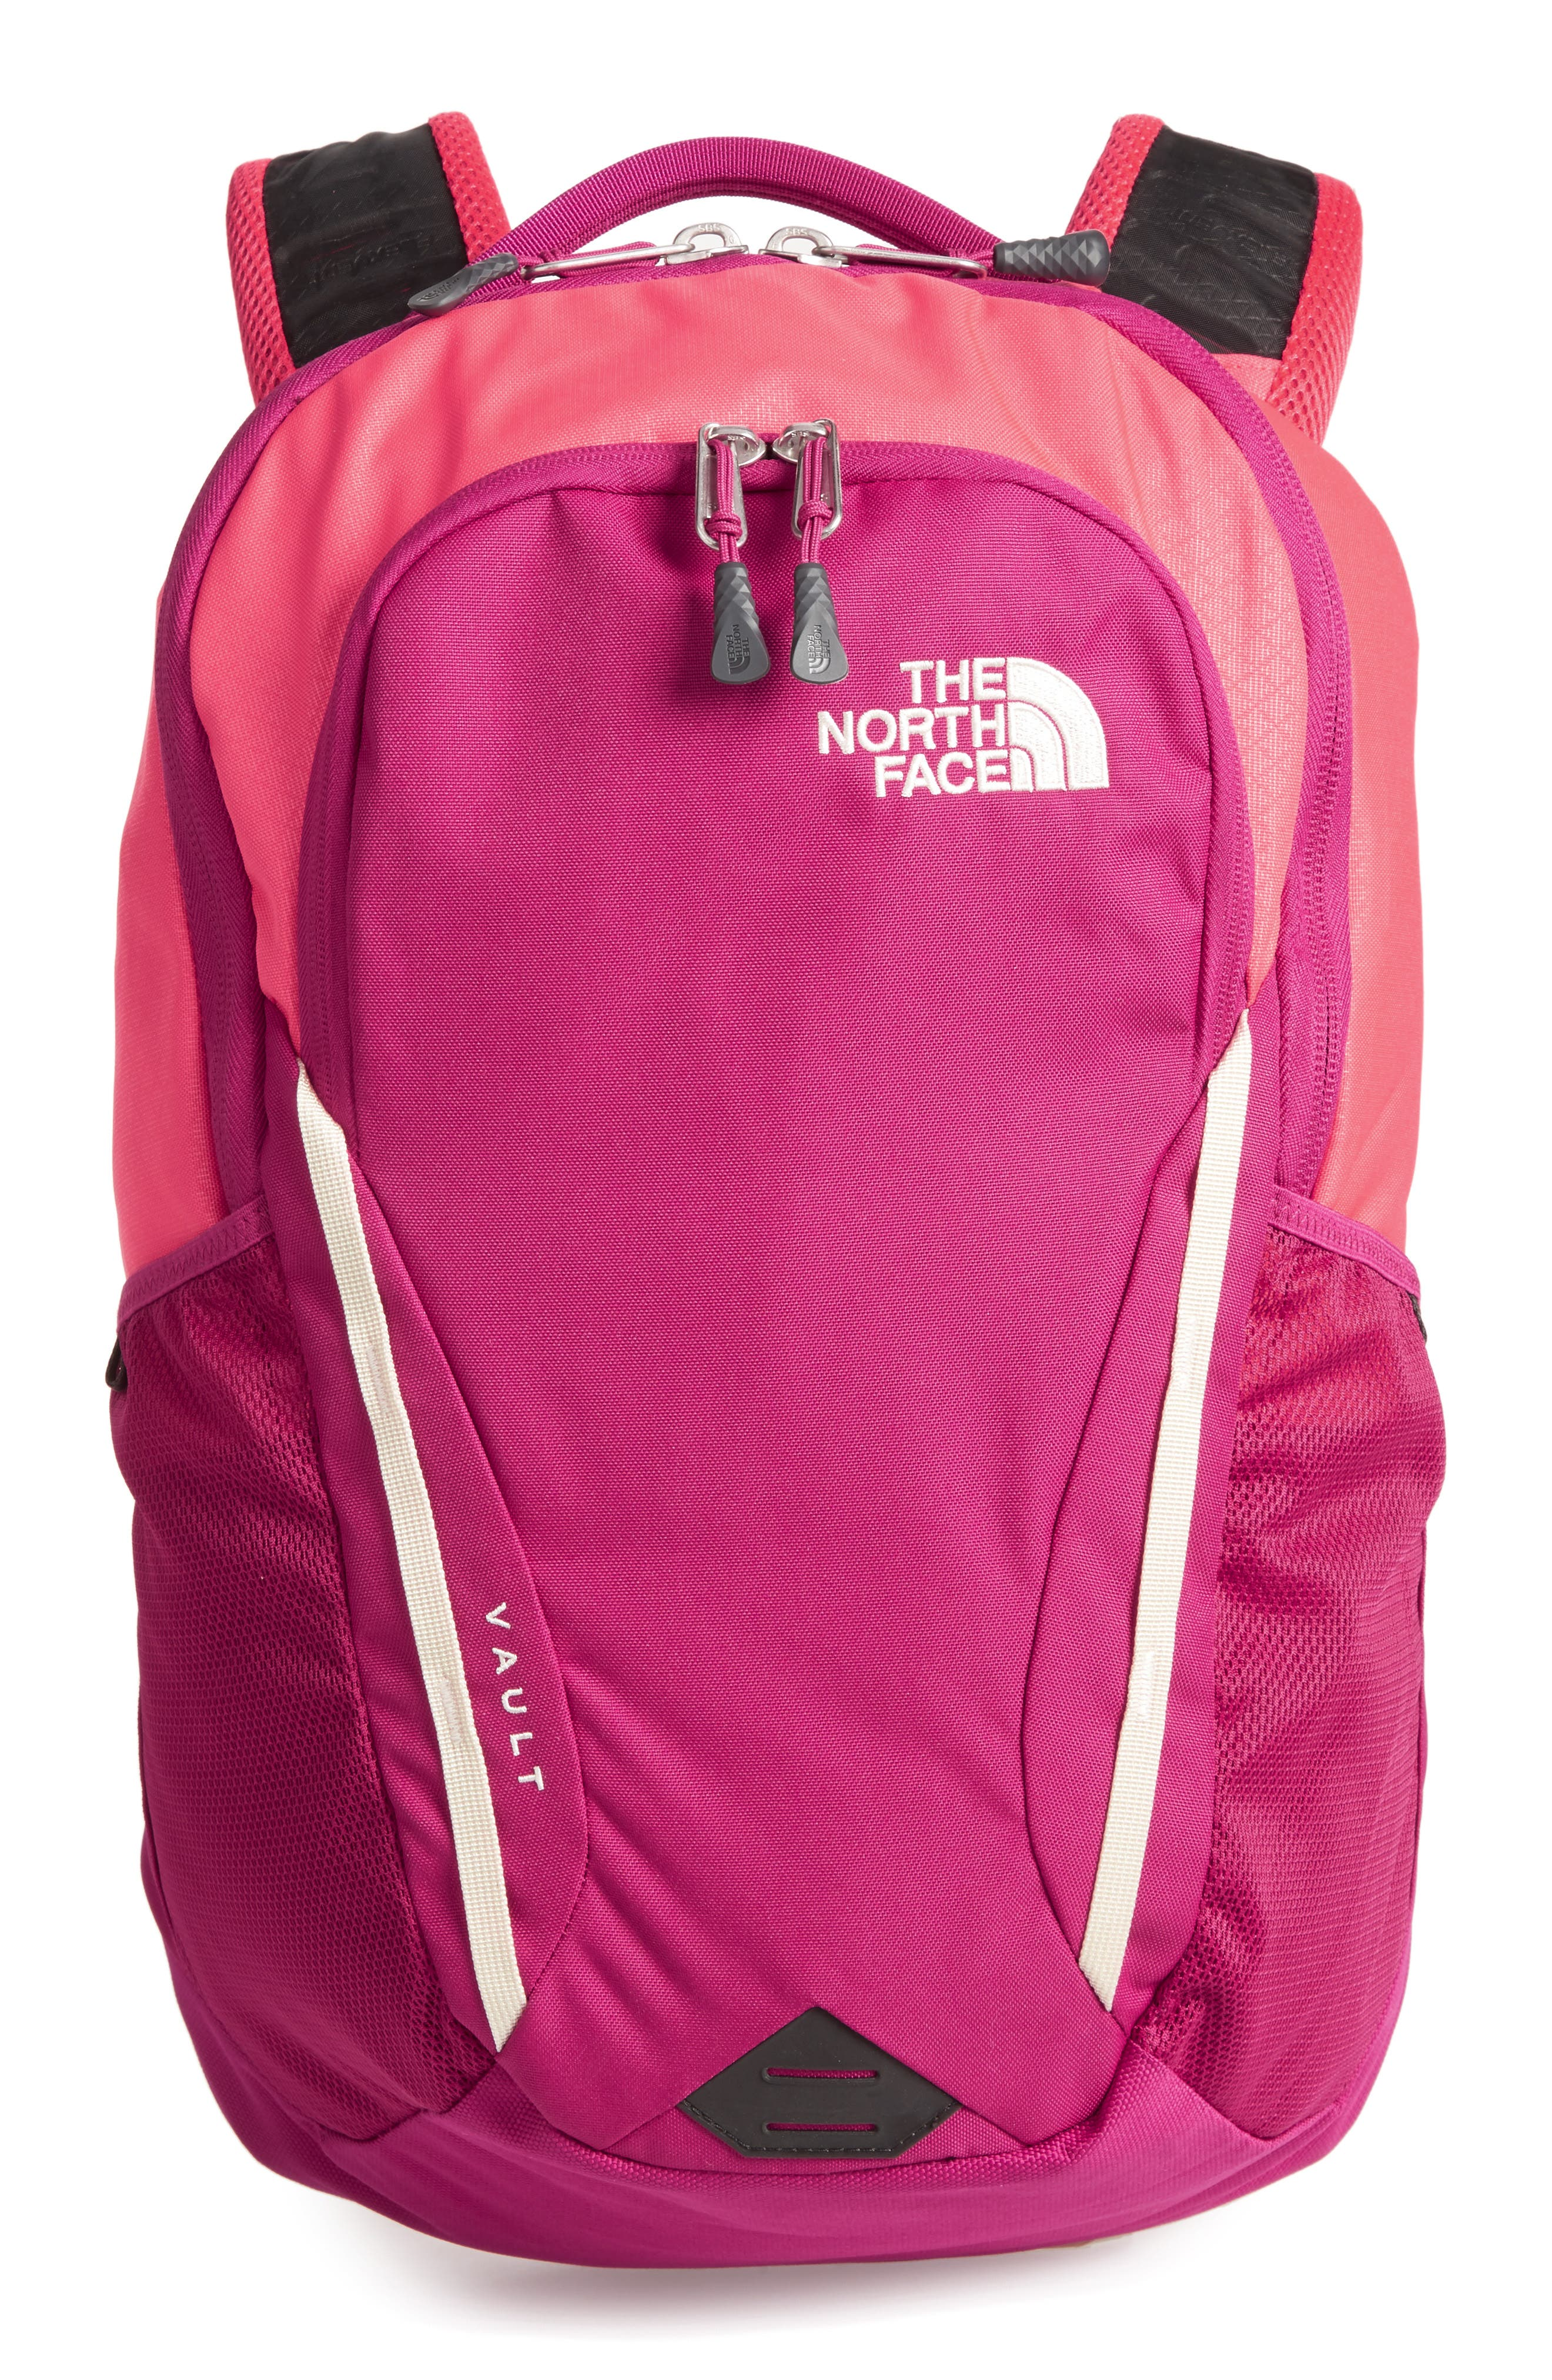 Vault Backpack,                             Main thumbnail 1, color,                             ATOMIC PINK/ DRAMATIC PLUM